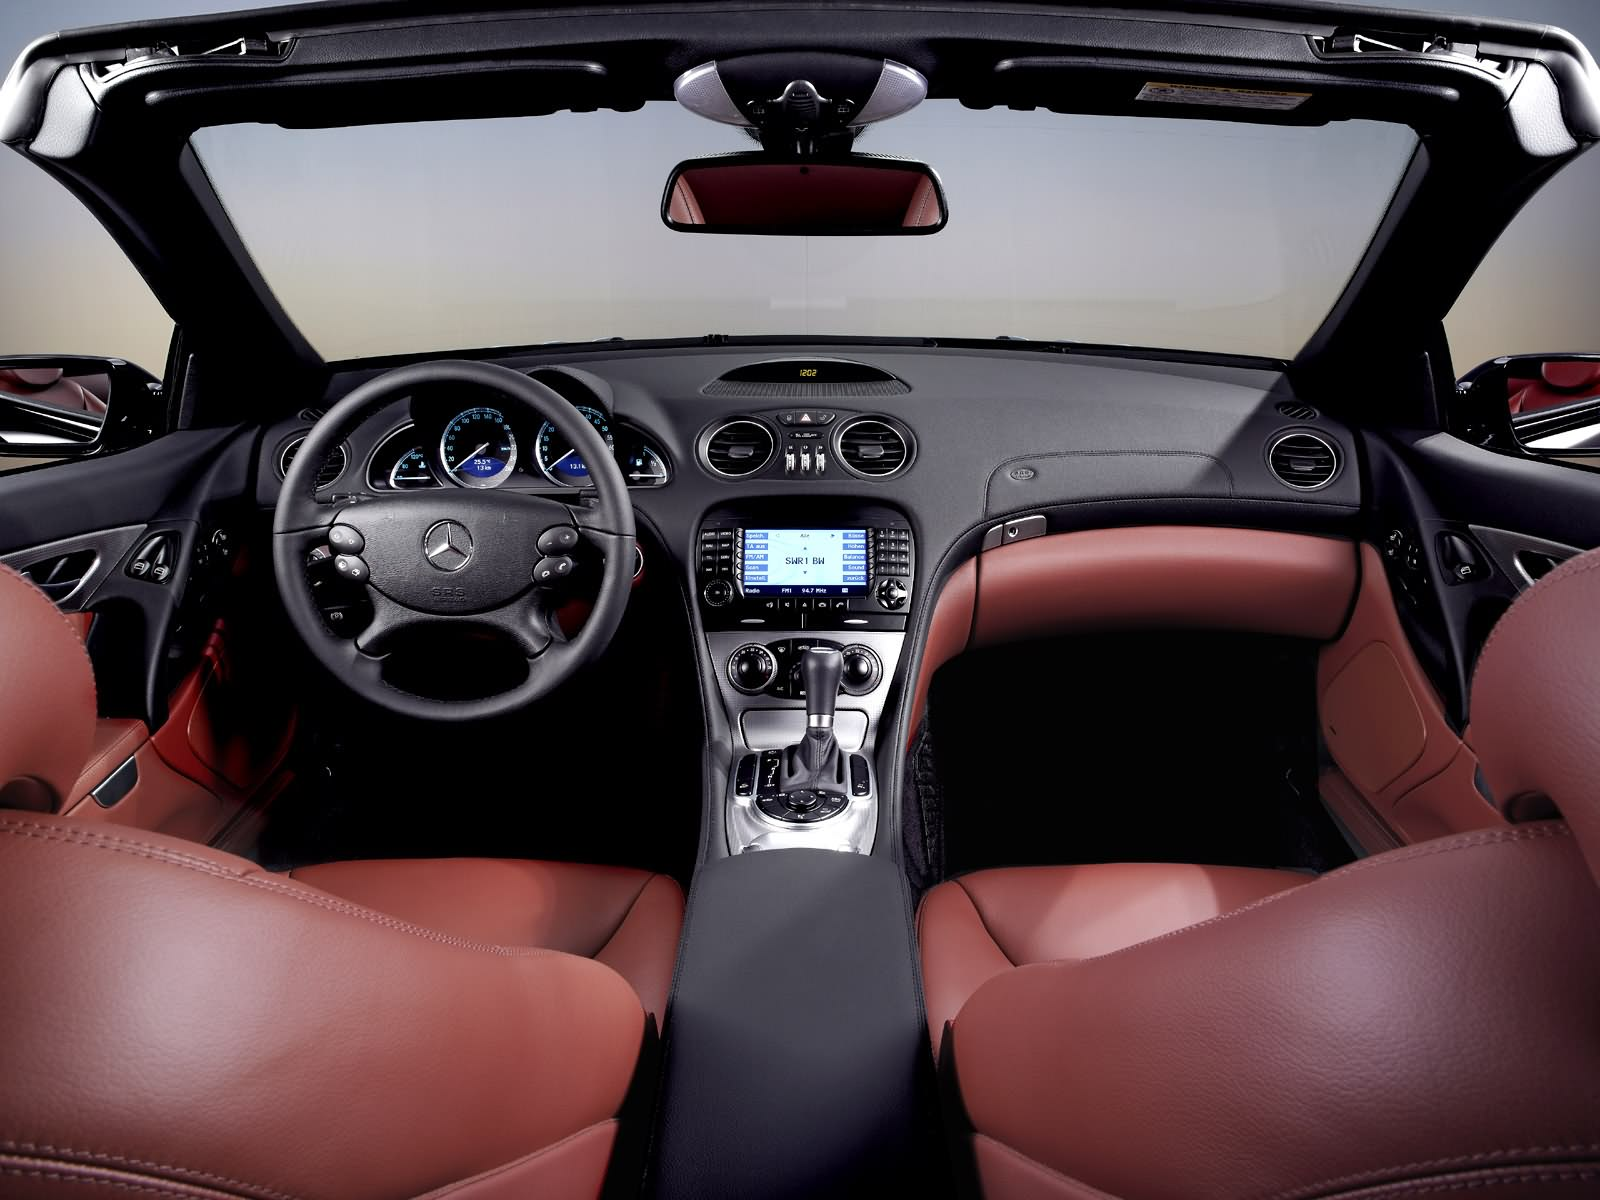 mercedes benz sl350 picture 7 of 22 my 2006 size 1600x1200. Black Bedroom Furniture Sets. Home Design Ideas